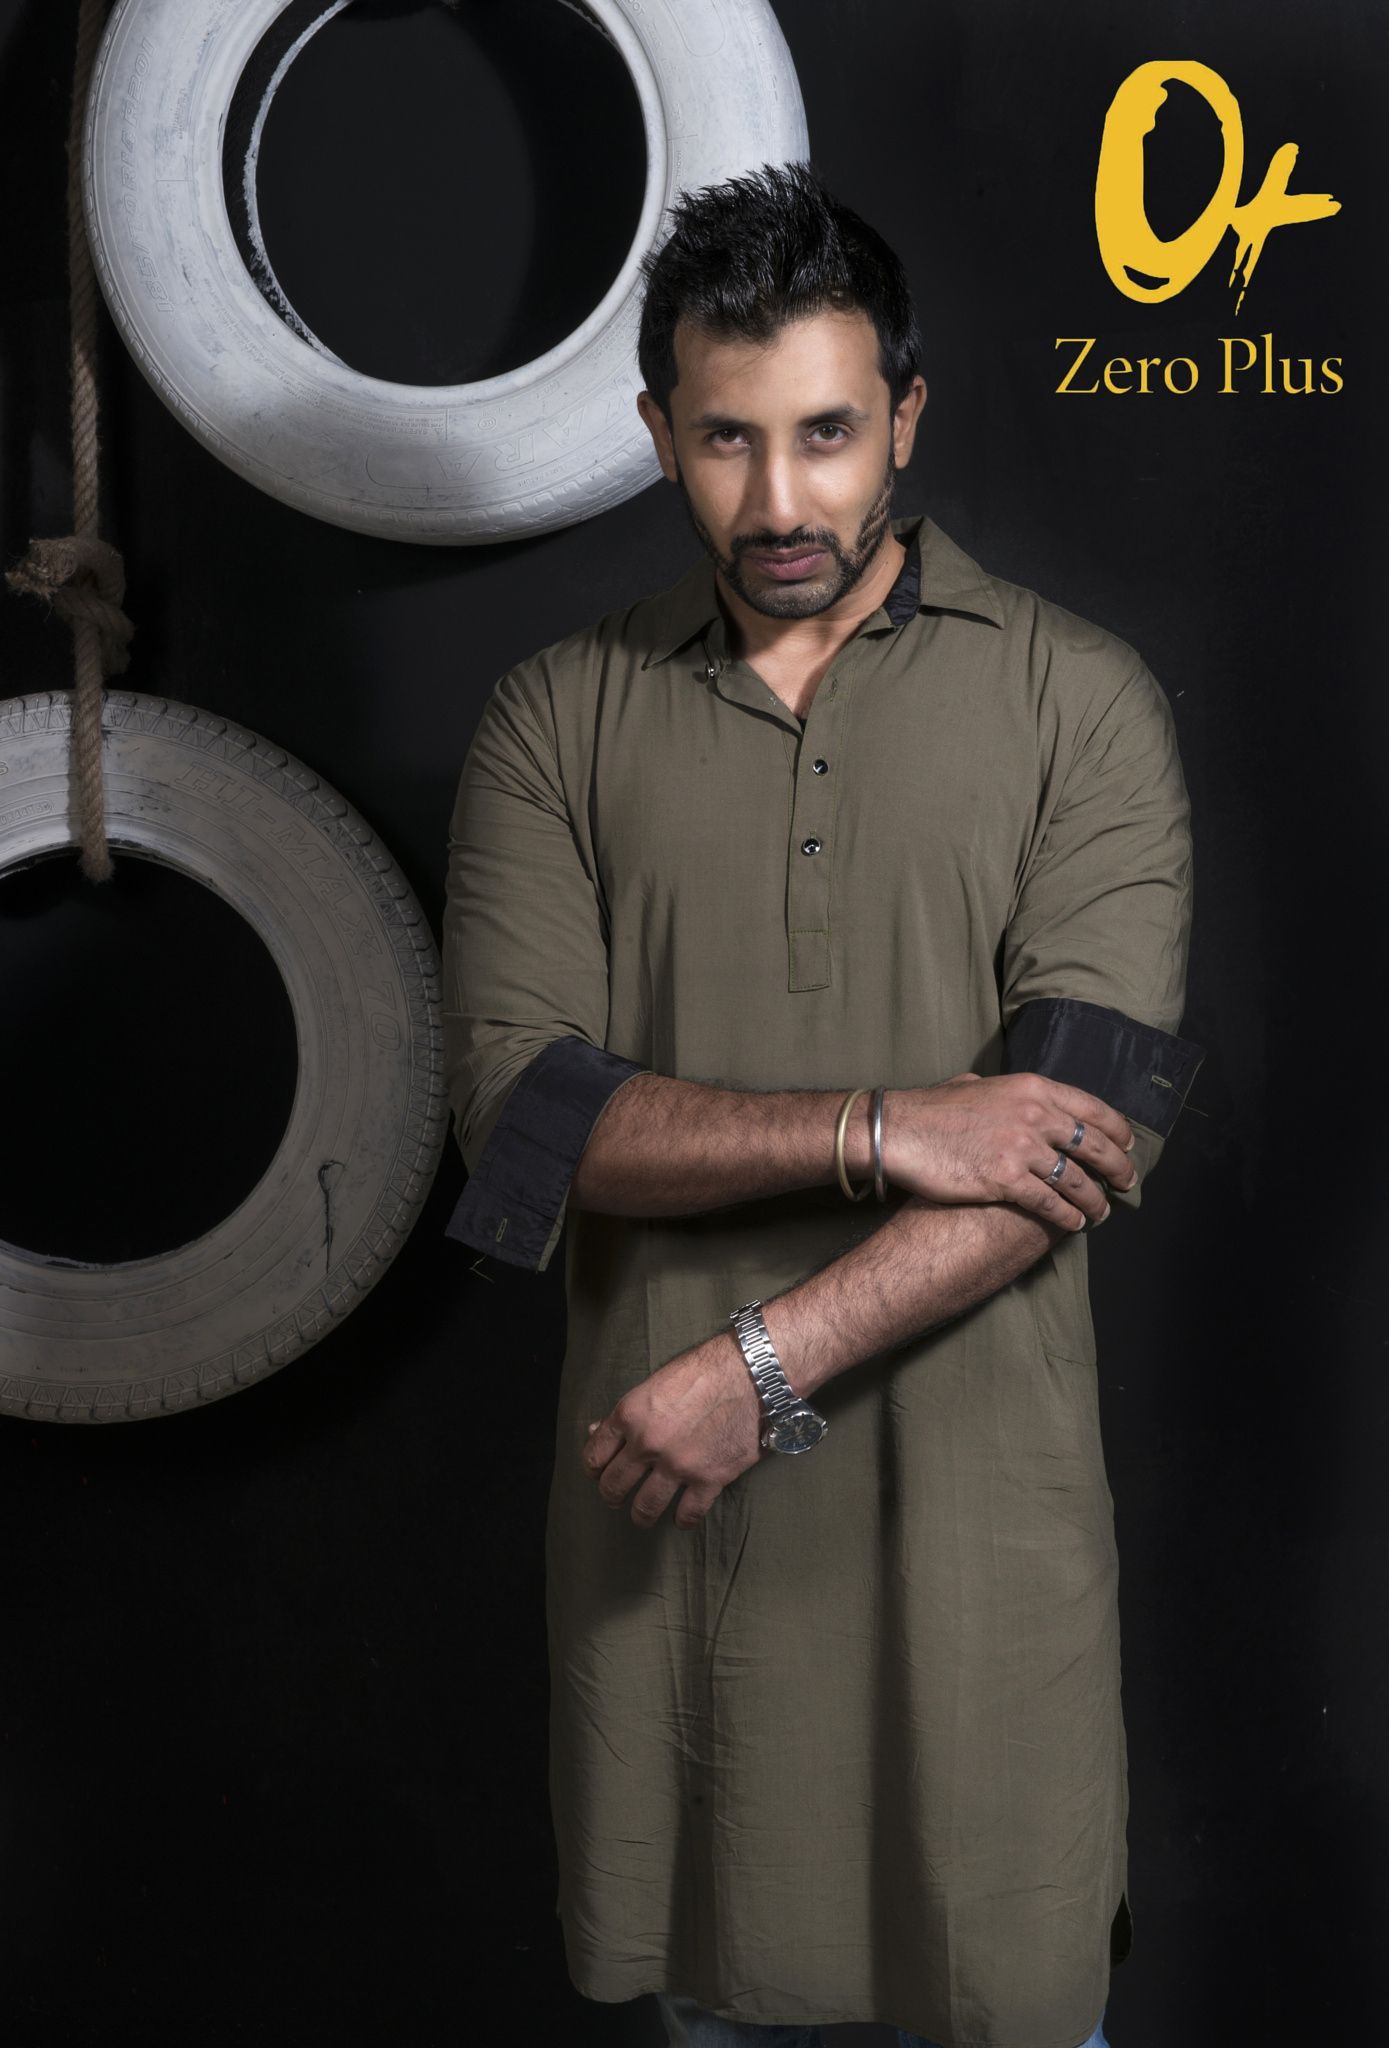 Zero plus 2016 (Eid) - Client : ZeroPlus Photographer: Adnan Bhuiyan Romanceabr Makeup : Polash All rights reserved by Adnan Bhuiyan RomanceAbr and Adnan Bhuiyan Romance Photography Photography.Donot try to use this image without ma permission. For shoot : contract : +8801681680657 email : adnanbhuiyanromance@gmail.com